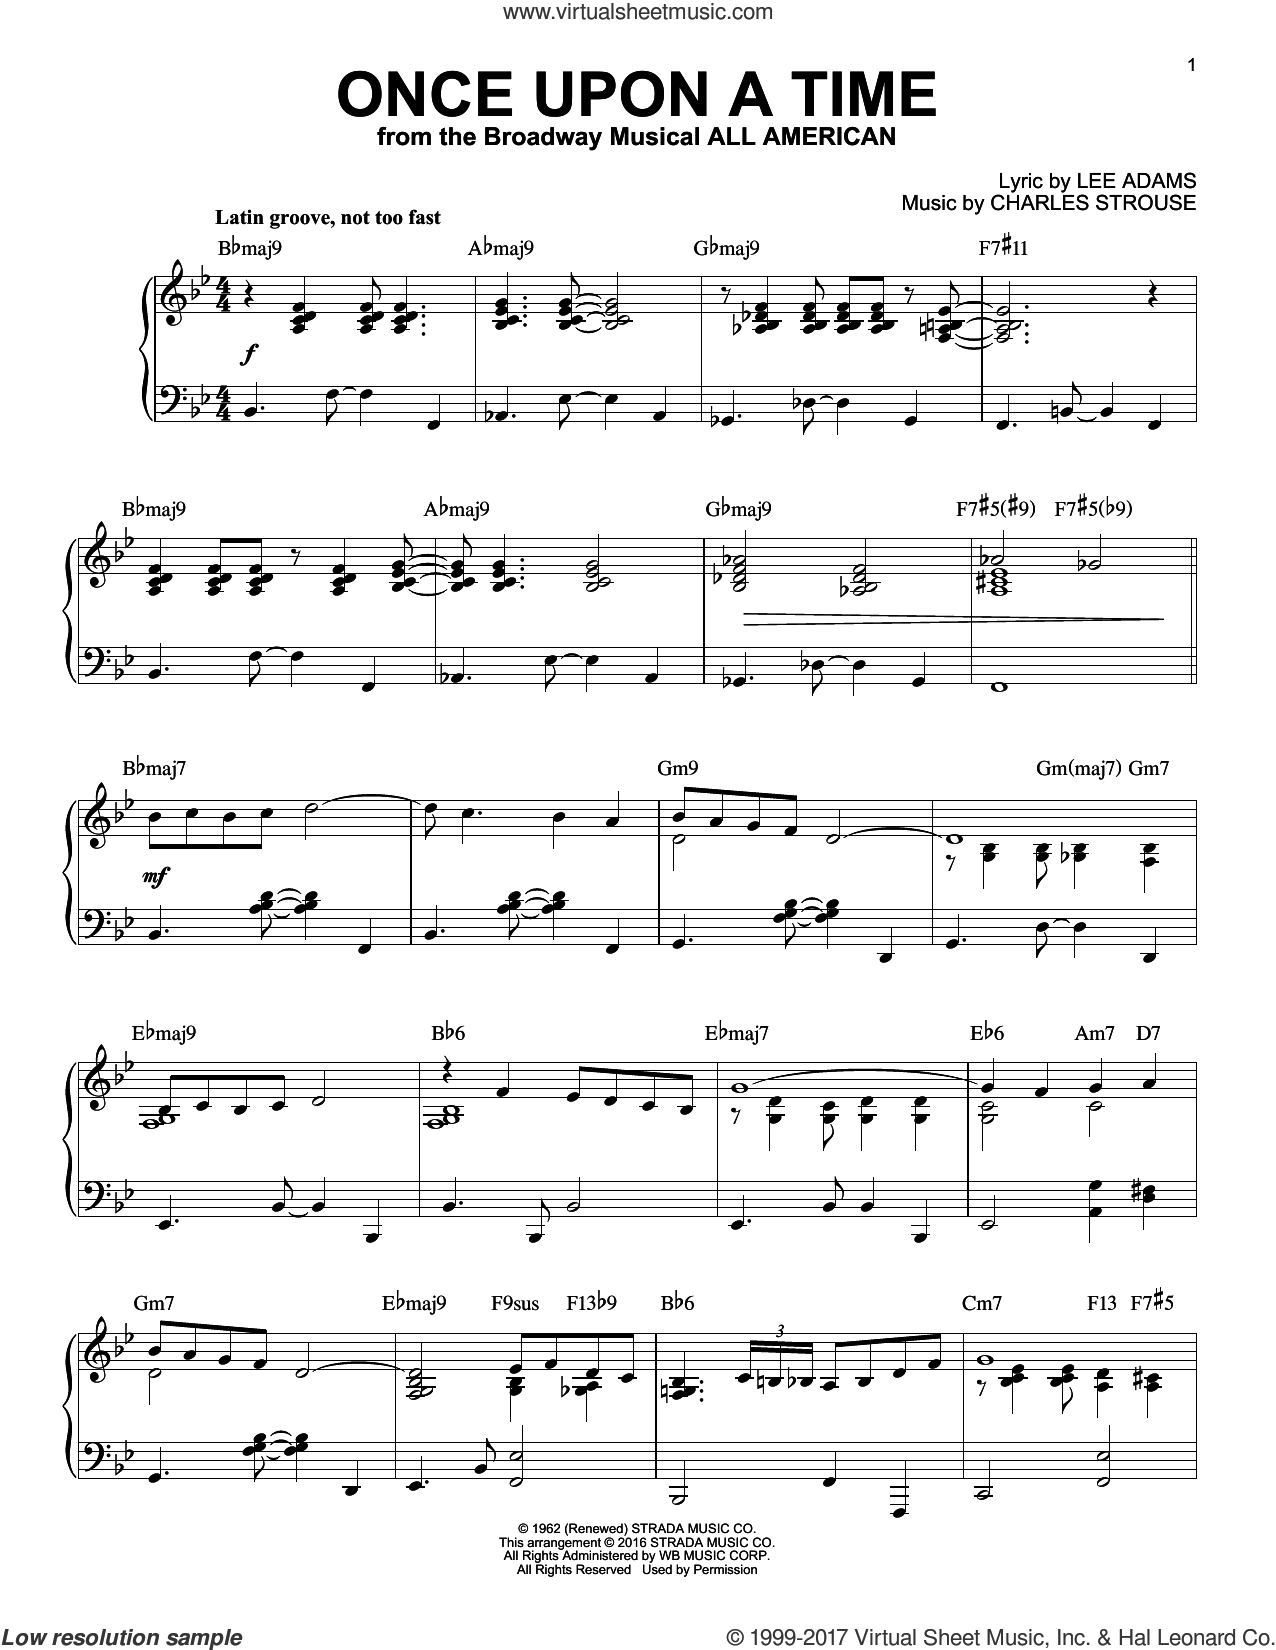 Once Upon A Time sheet music for piano solo by Charles Strouse and Lee Adams, intermediate skill level